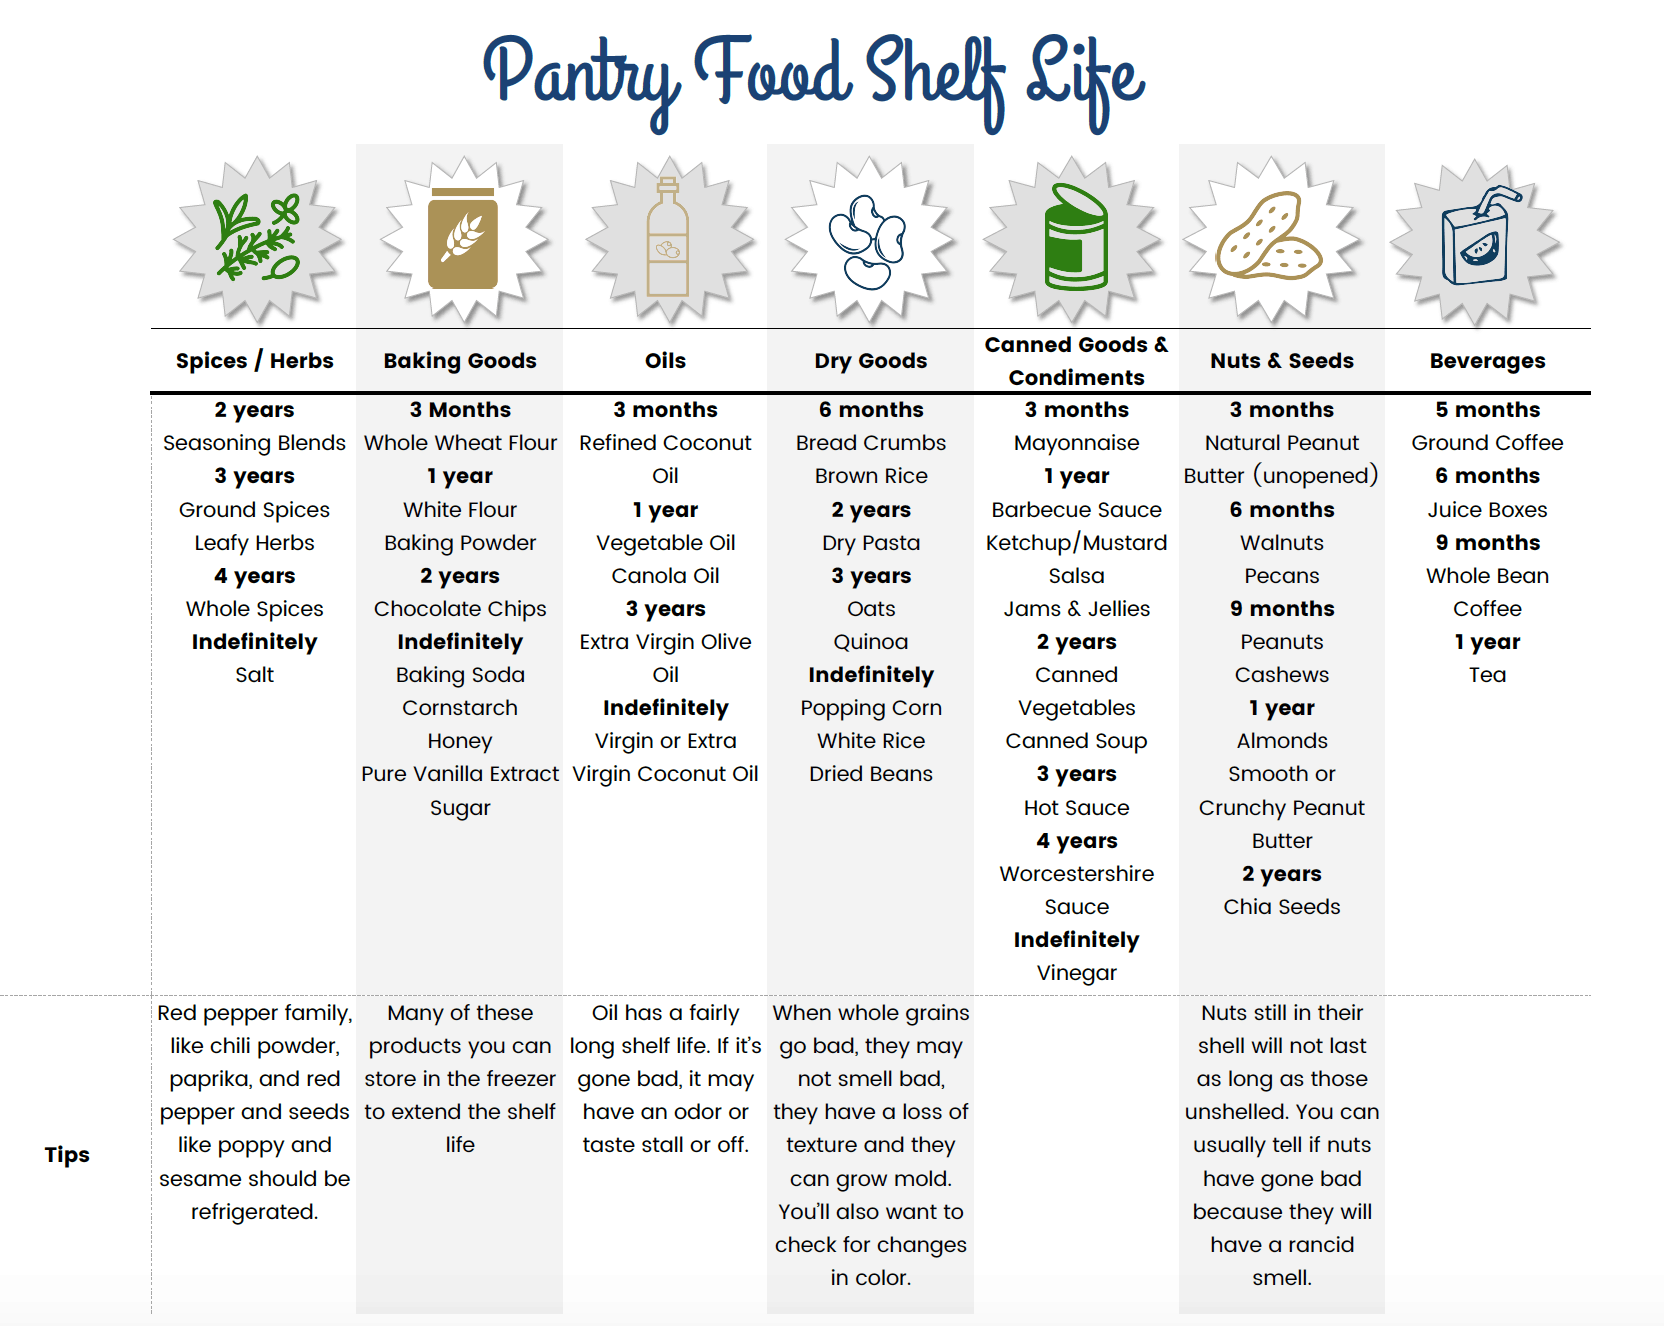 Chart summarizing the shelf life of pantry foods